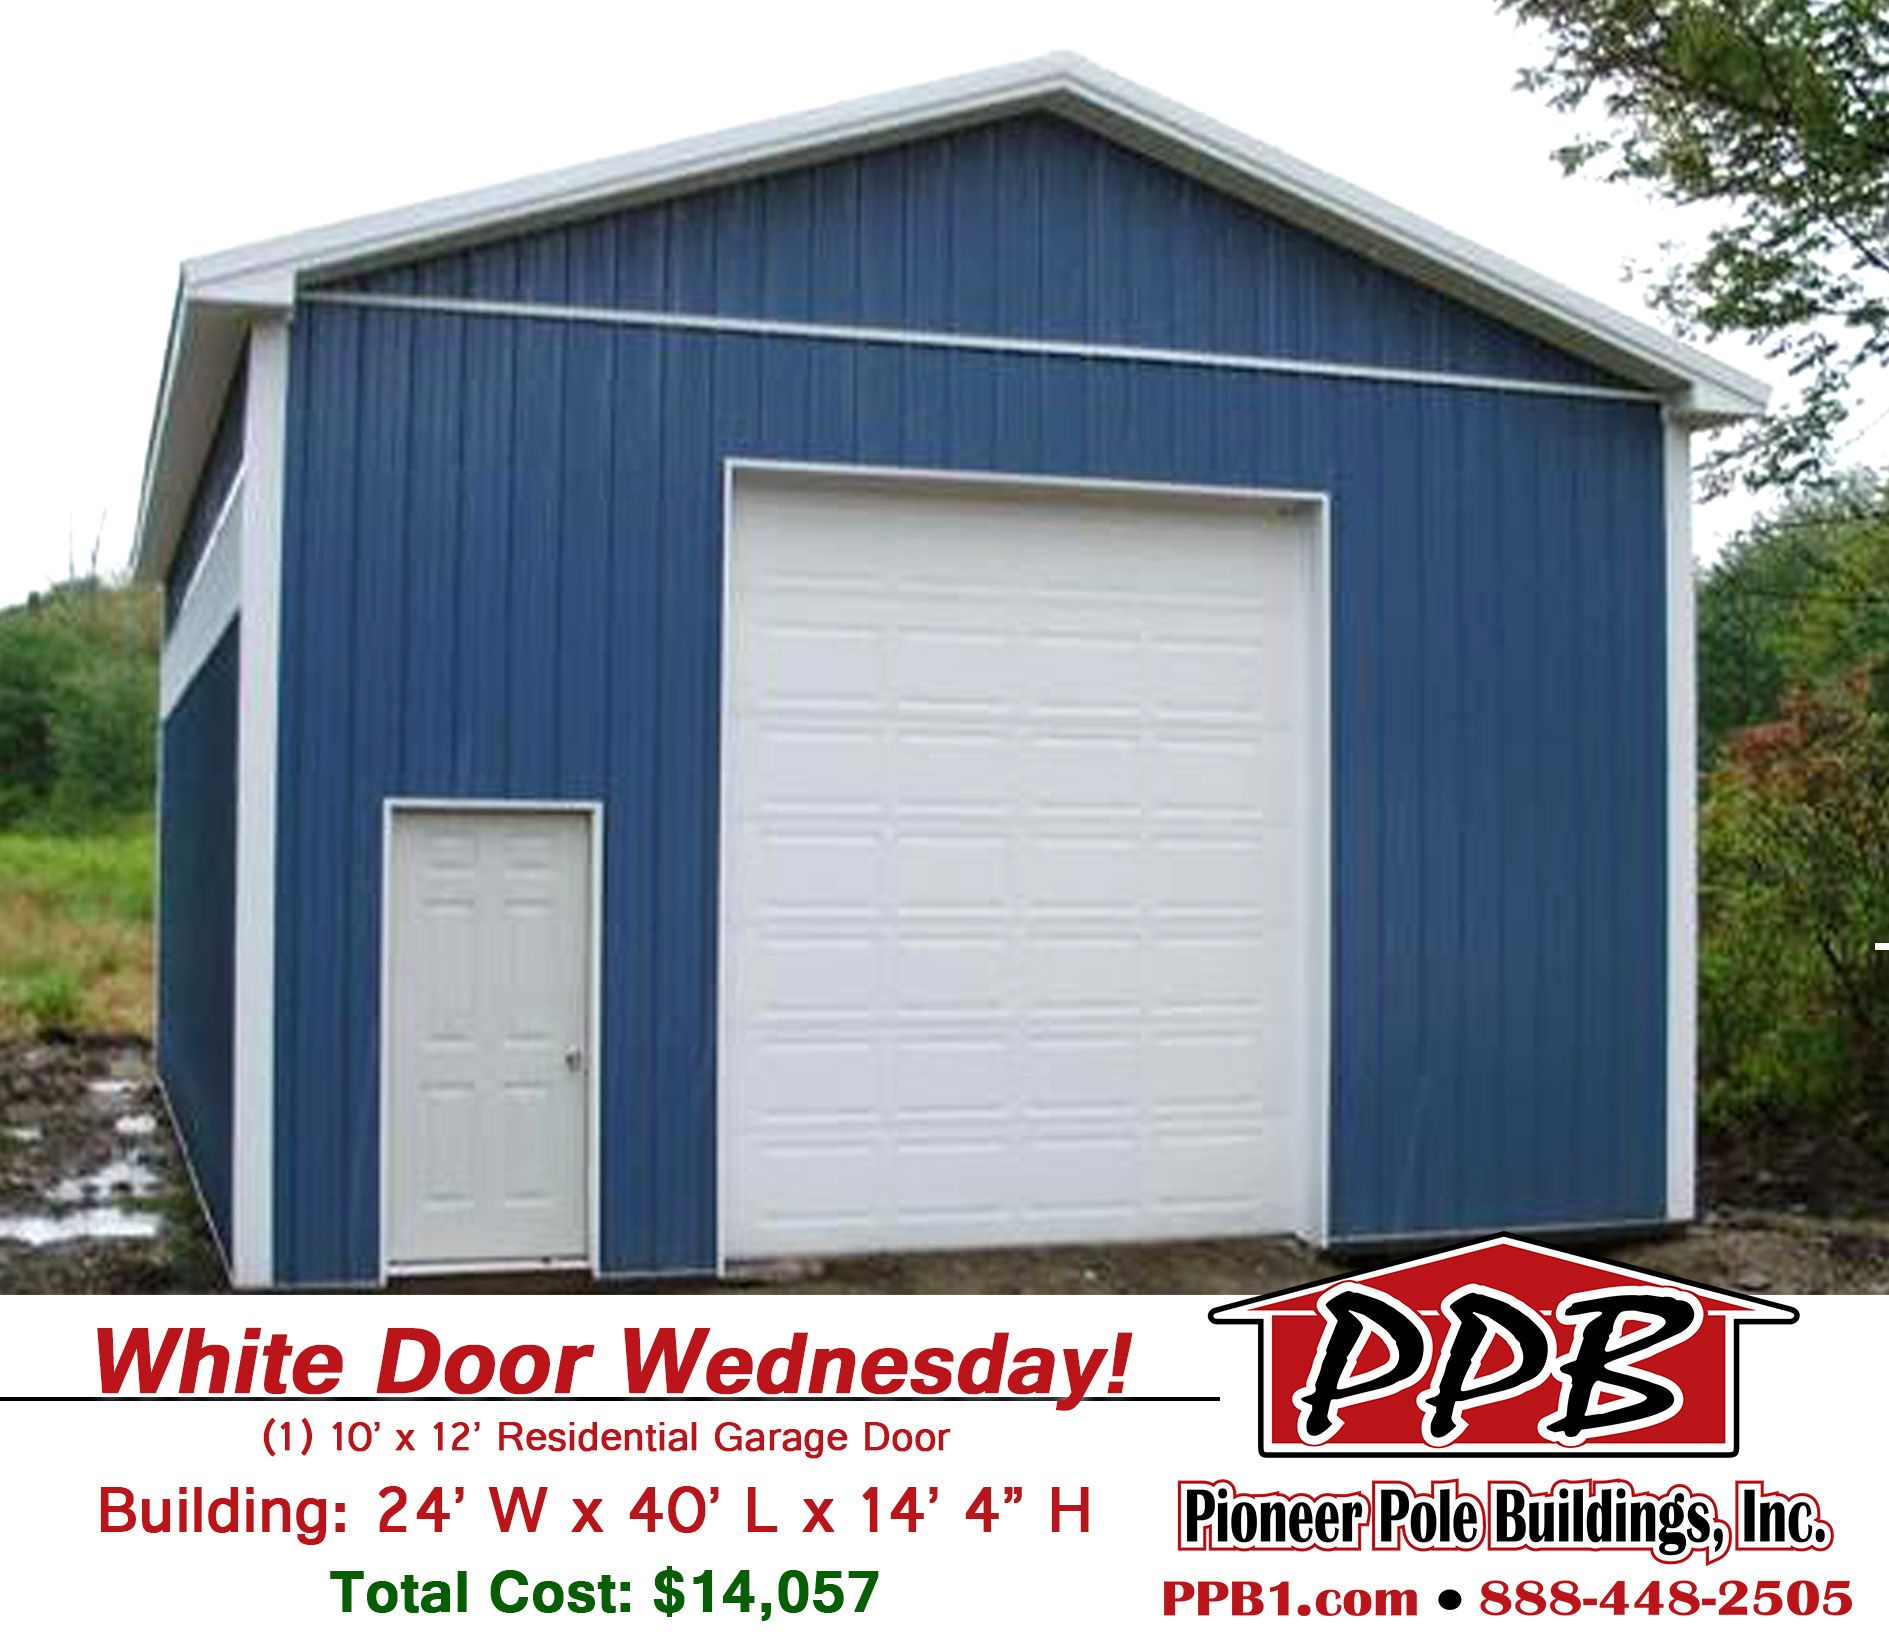 White Door Wednesday Dimensions 24 W X 40 L X 14 4 H Id 232 24 Standard Trusses 4 On Center Residential Garage Doors Garage Doors Garage Design